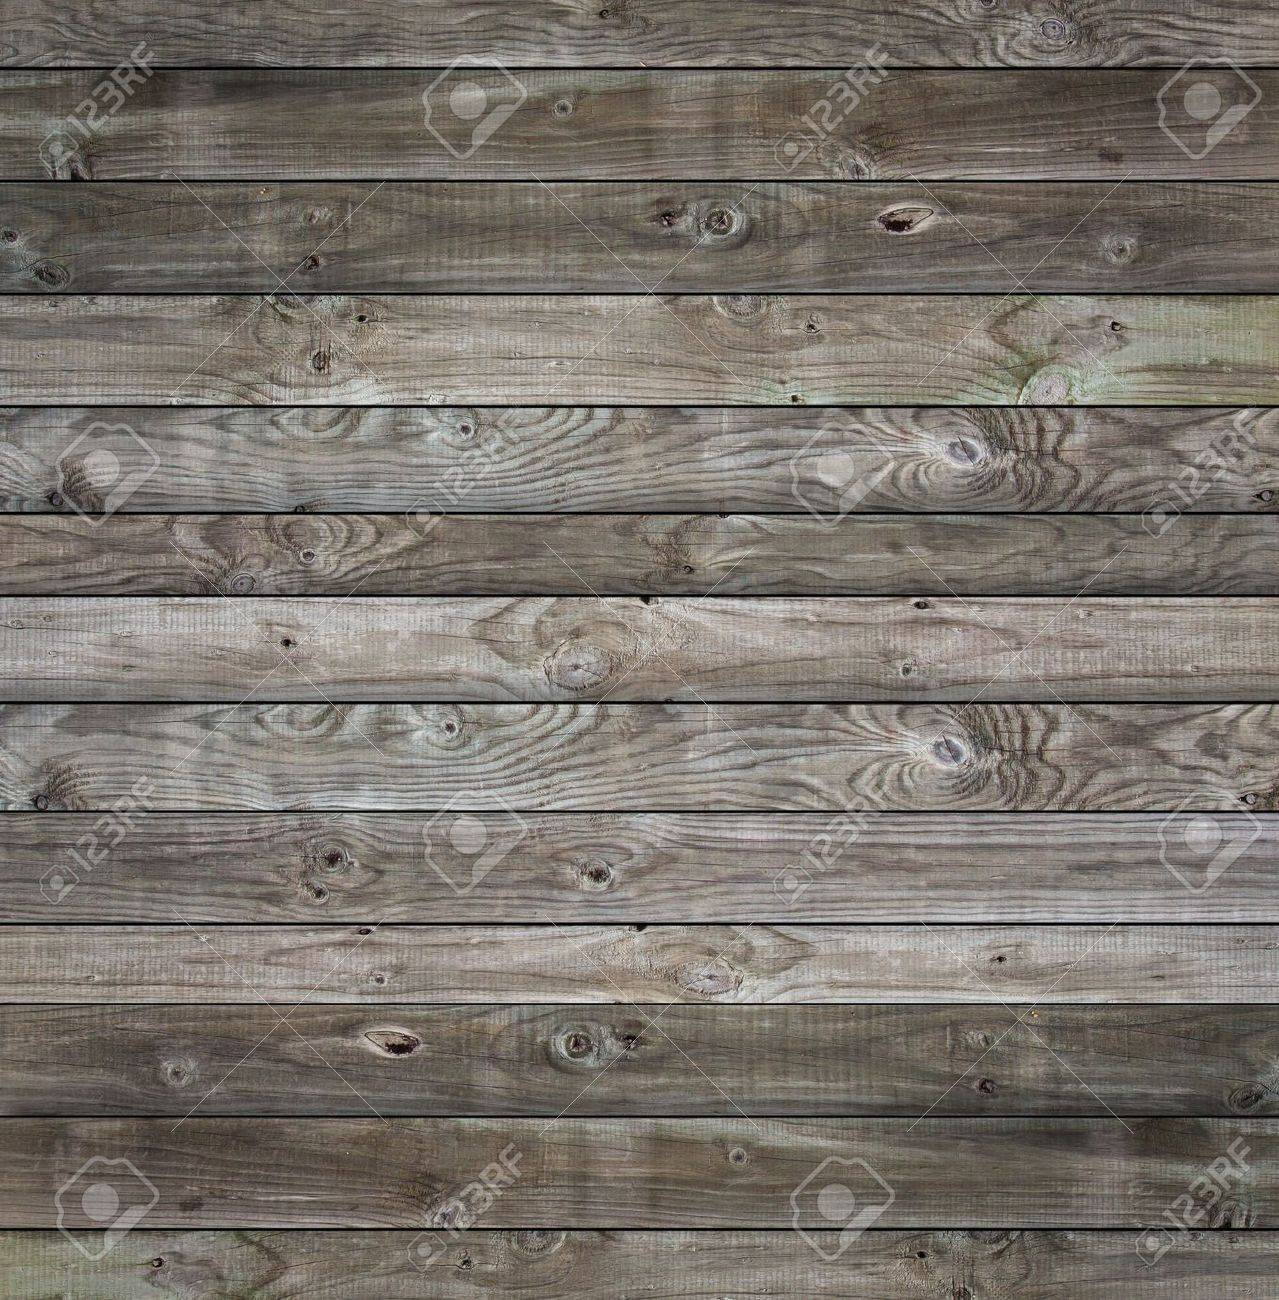 Grunge Wood Panels For Background Stock Photo, Picture And Royalty - Wood Panel Background WB Designs